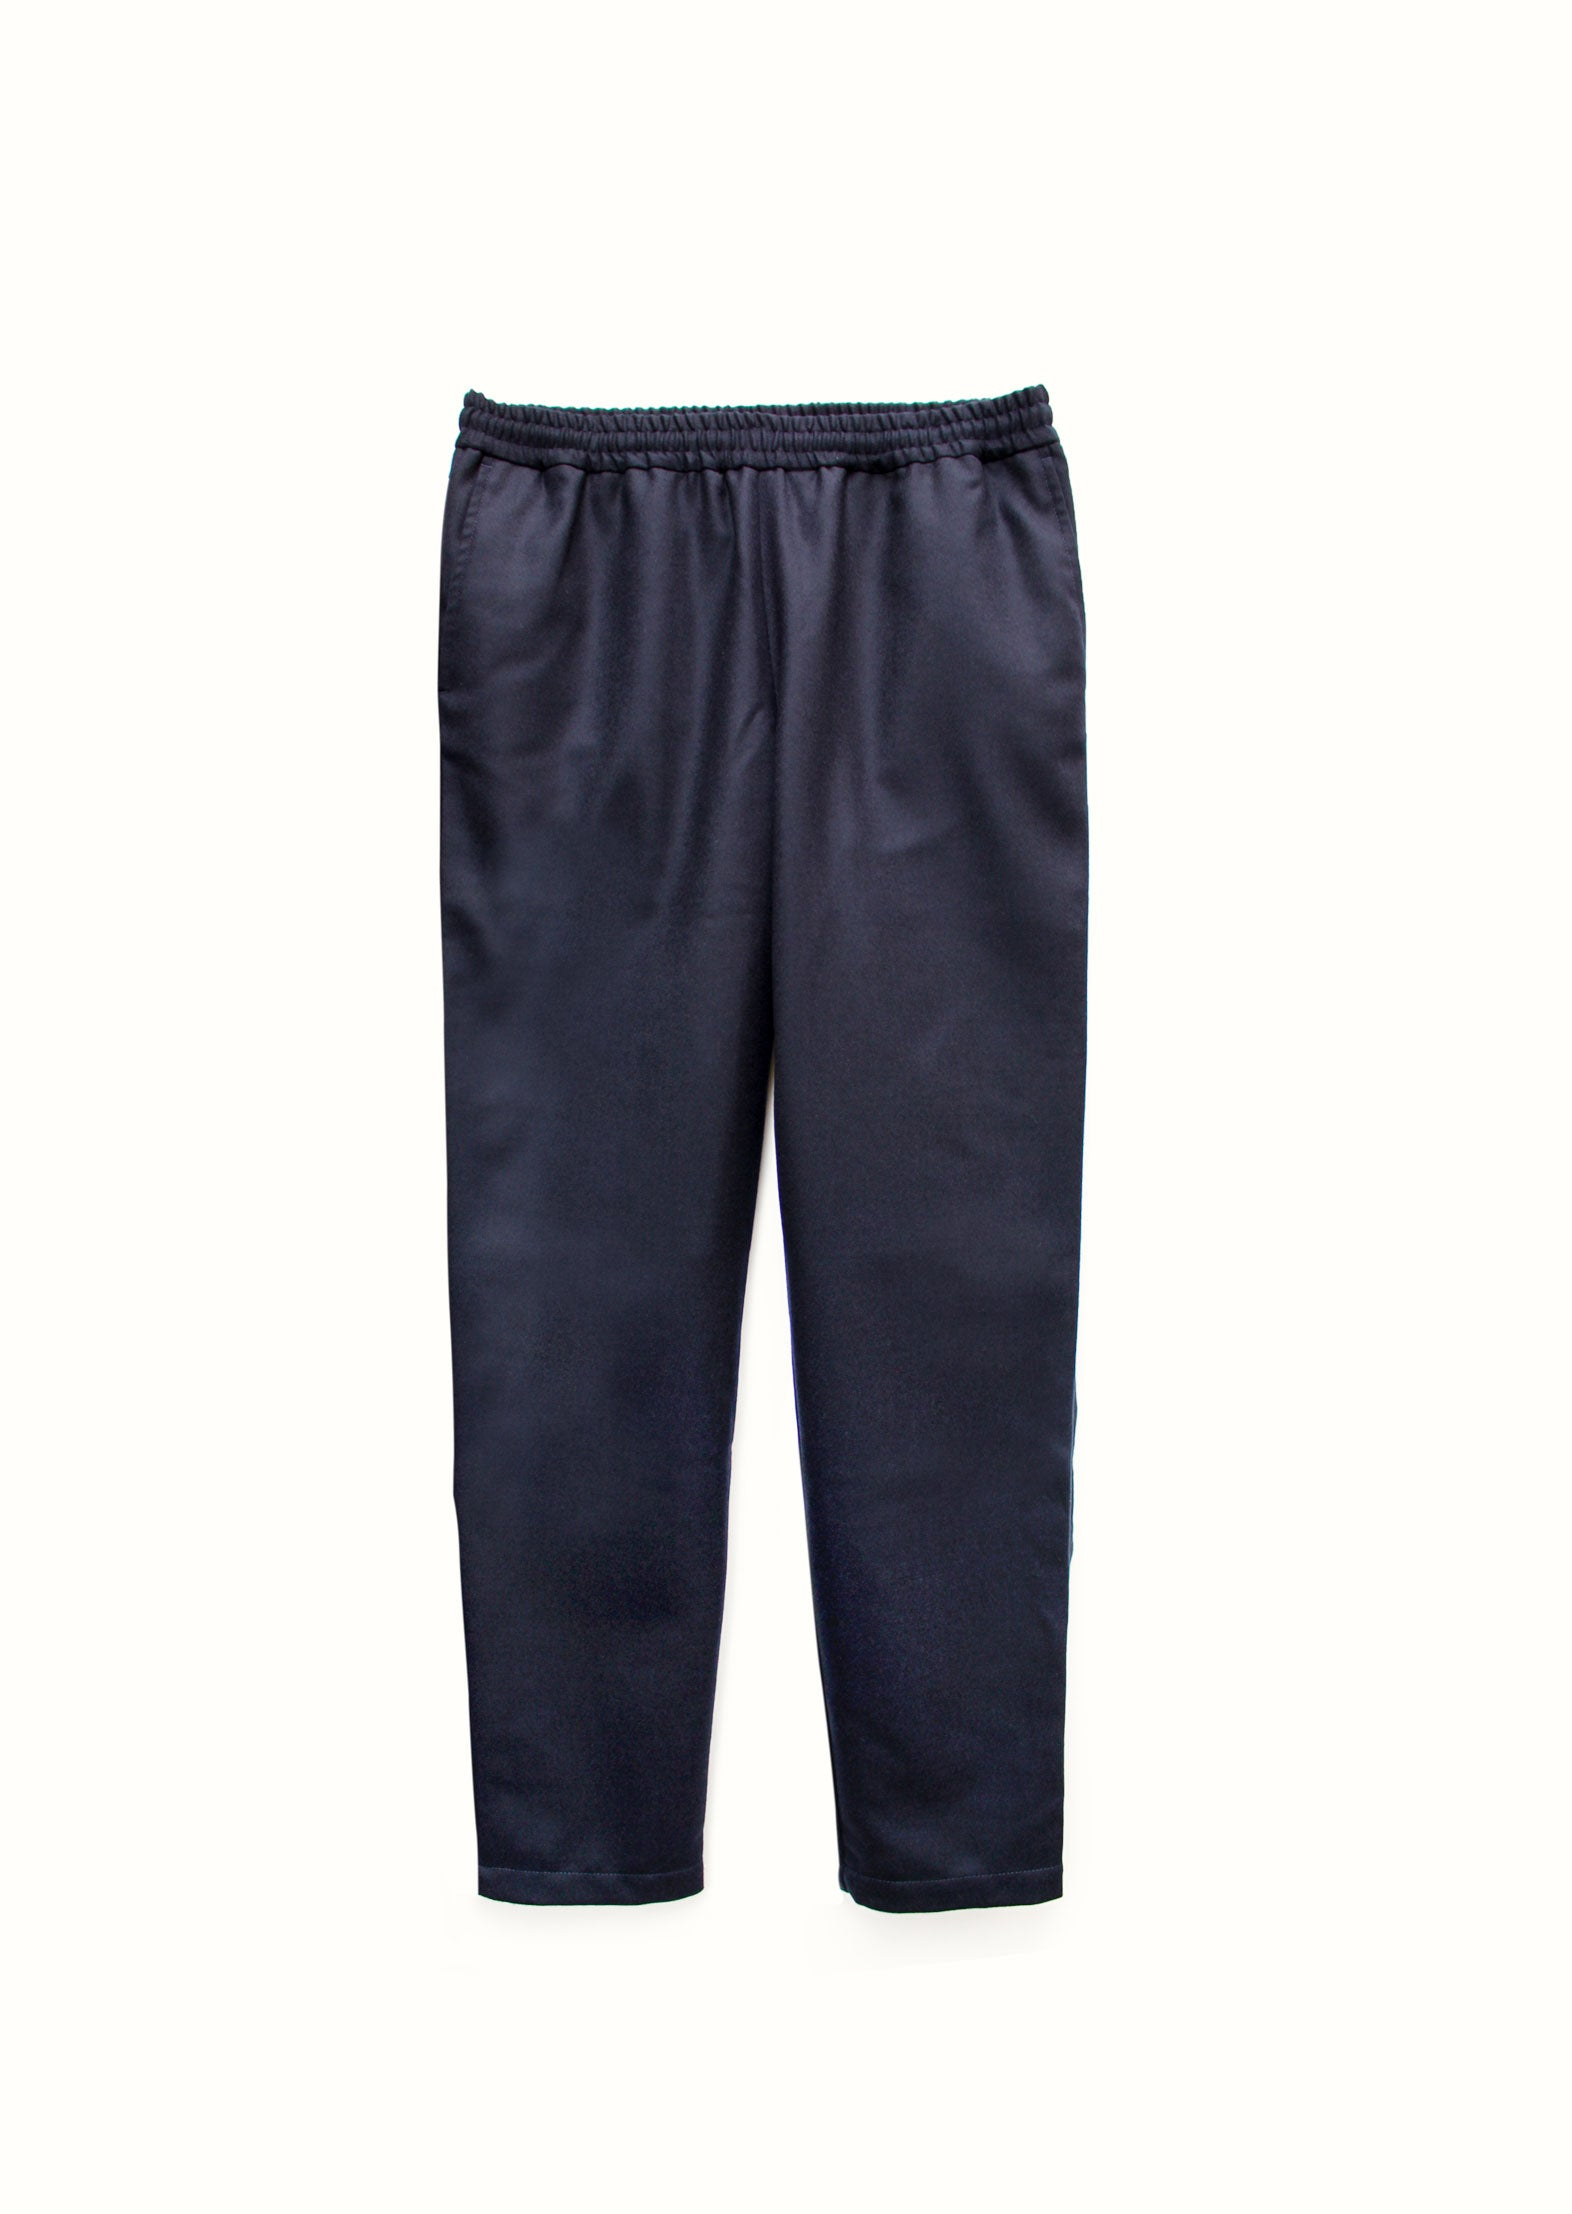 Relaxed trousers - Japanese wool twill - Navy - De Bonne Facture